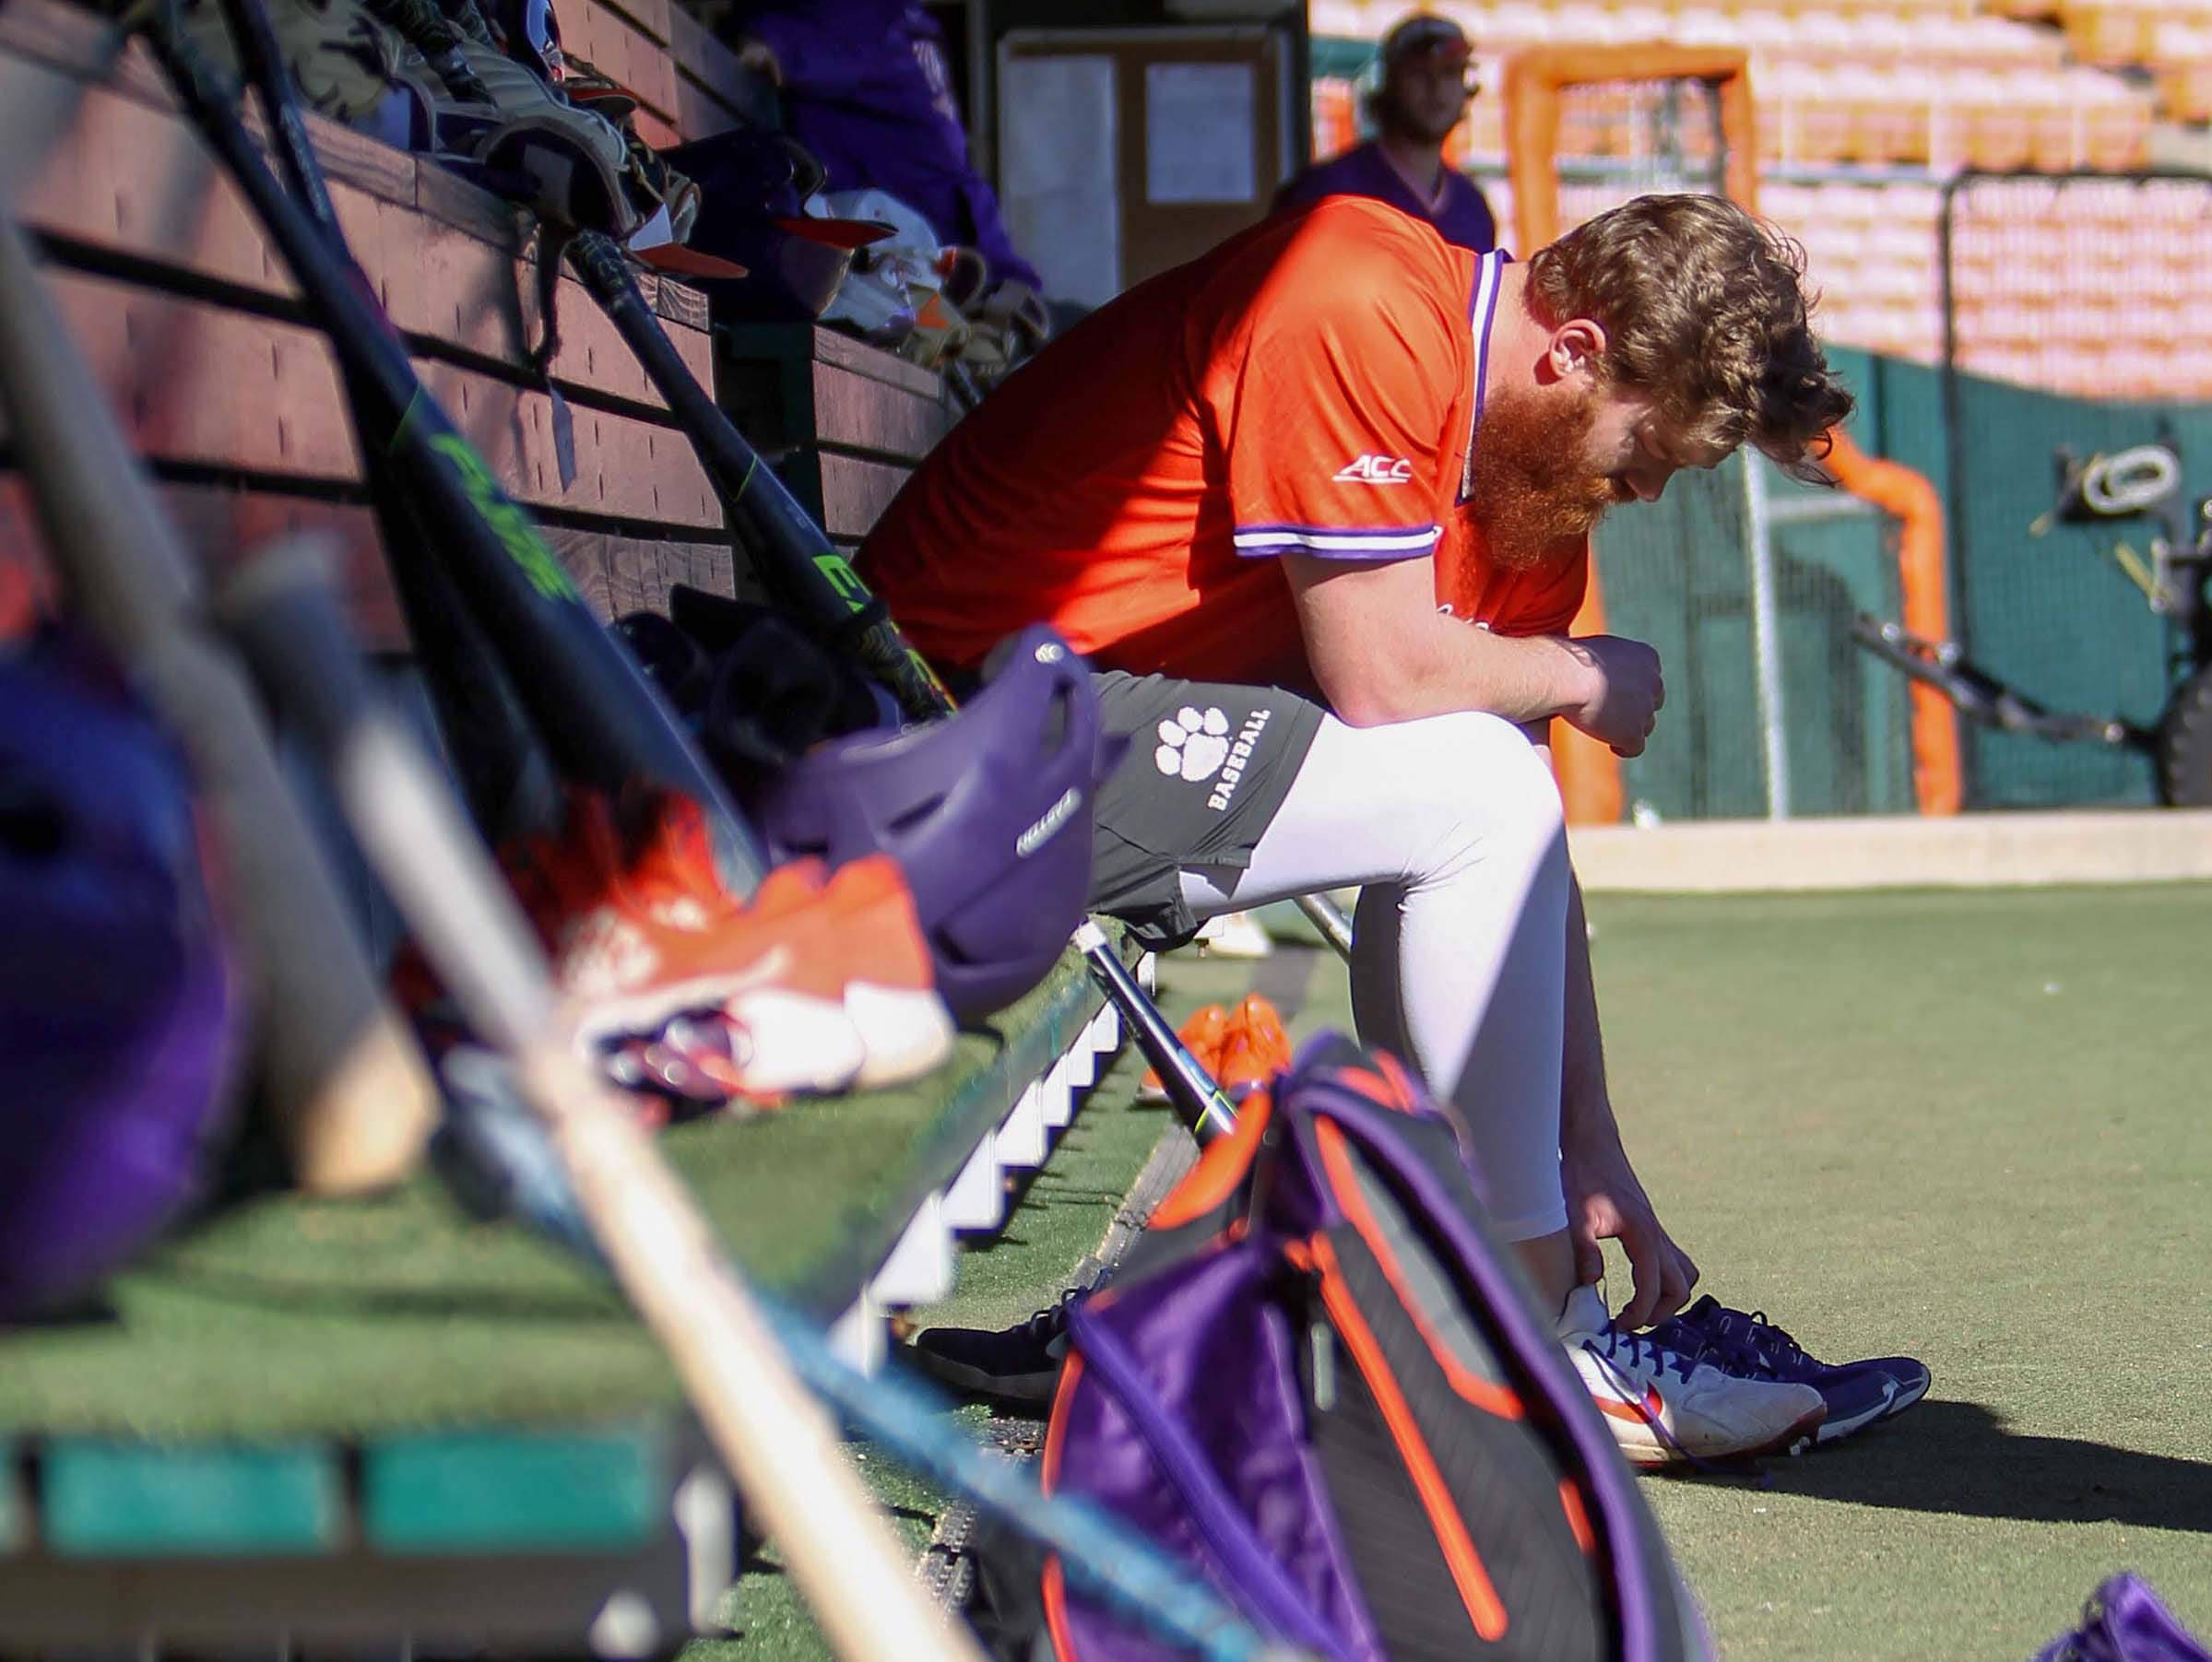 Clemson infielder Grayson Byrd gets ready in the dugout before practice at Doug Kingsmore Stadium in Clemson Friday.